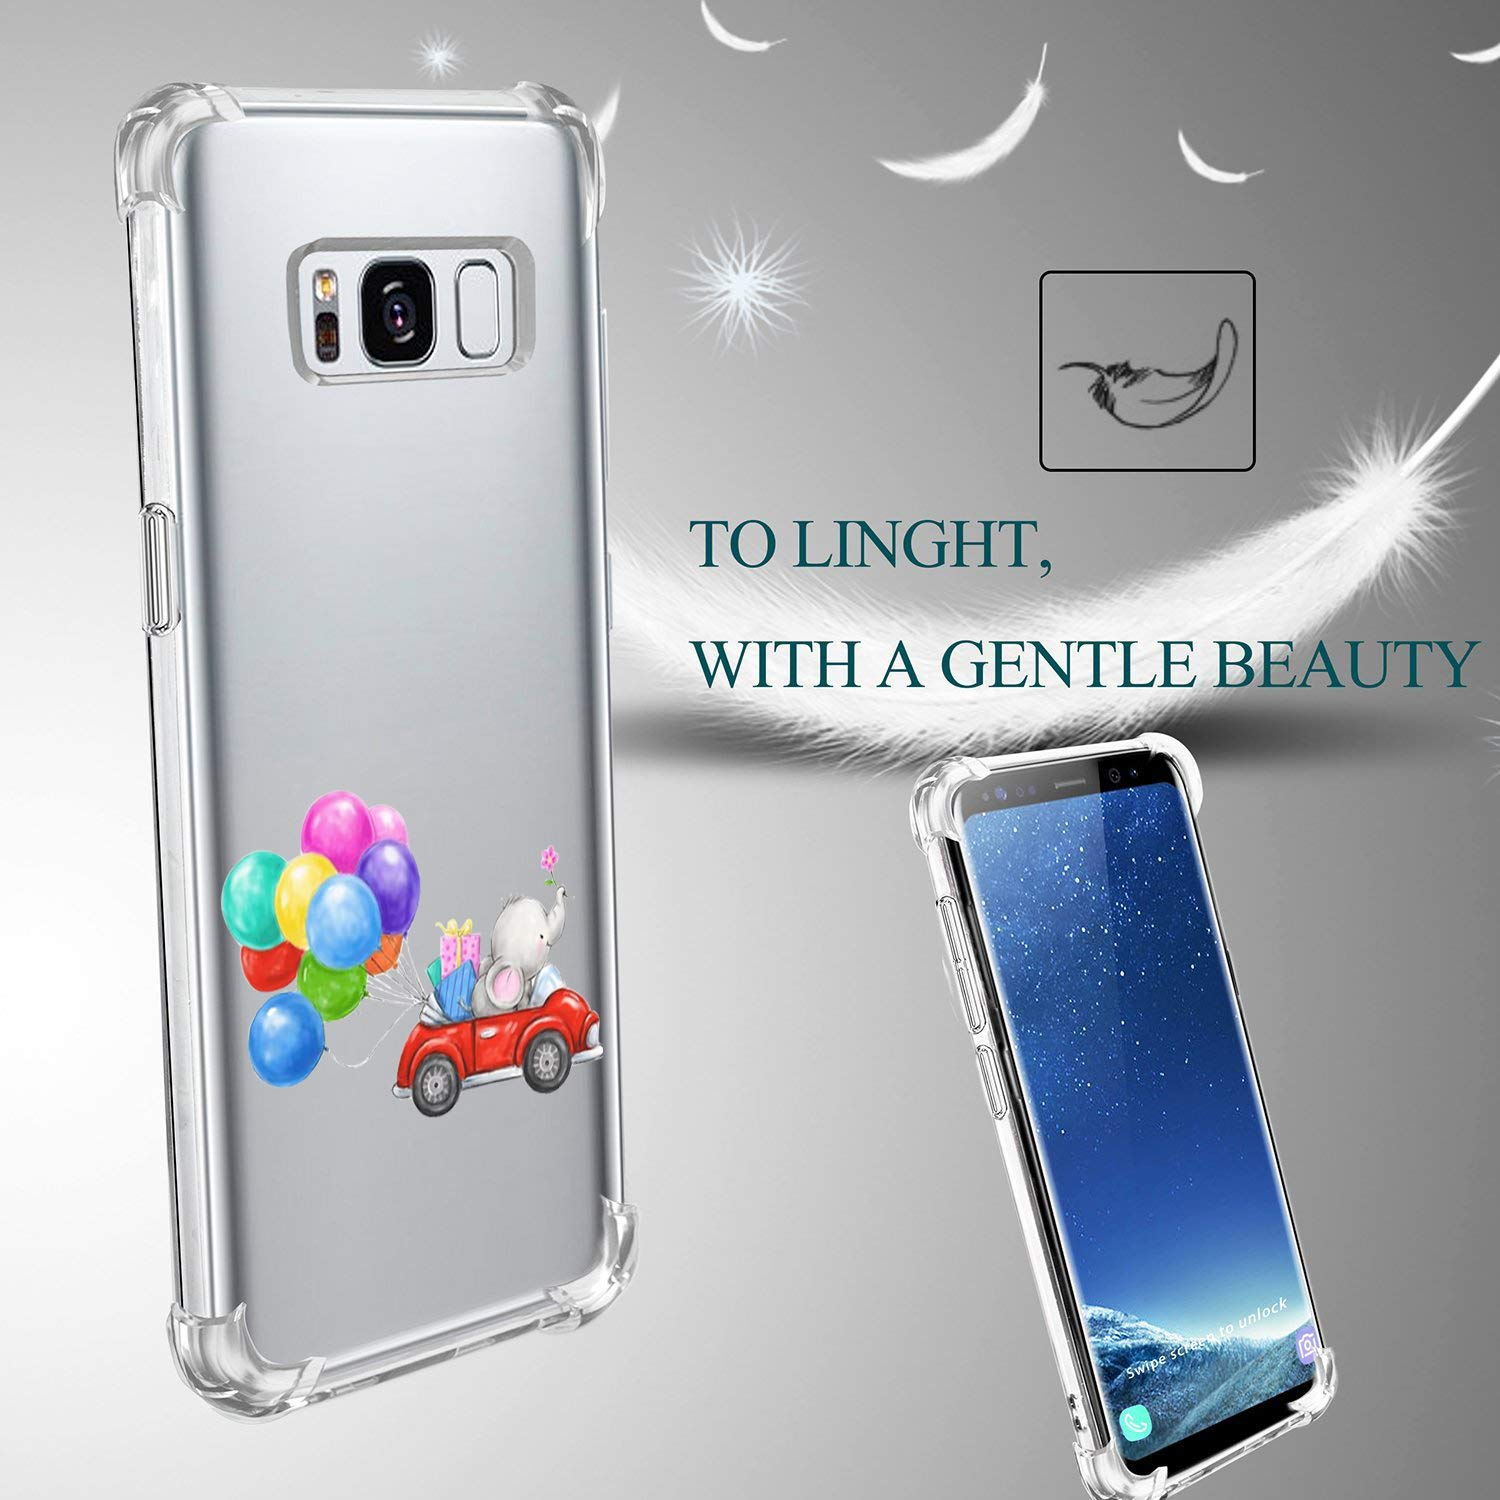 Compatible for Samsung Galaxy Plus case Ultra-Thin Animal series Clear Design Transparent Durable Flexible Soft Silicone Case Scratchproof Scratch resistant protective case Cover